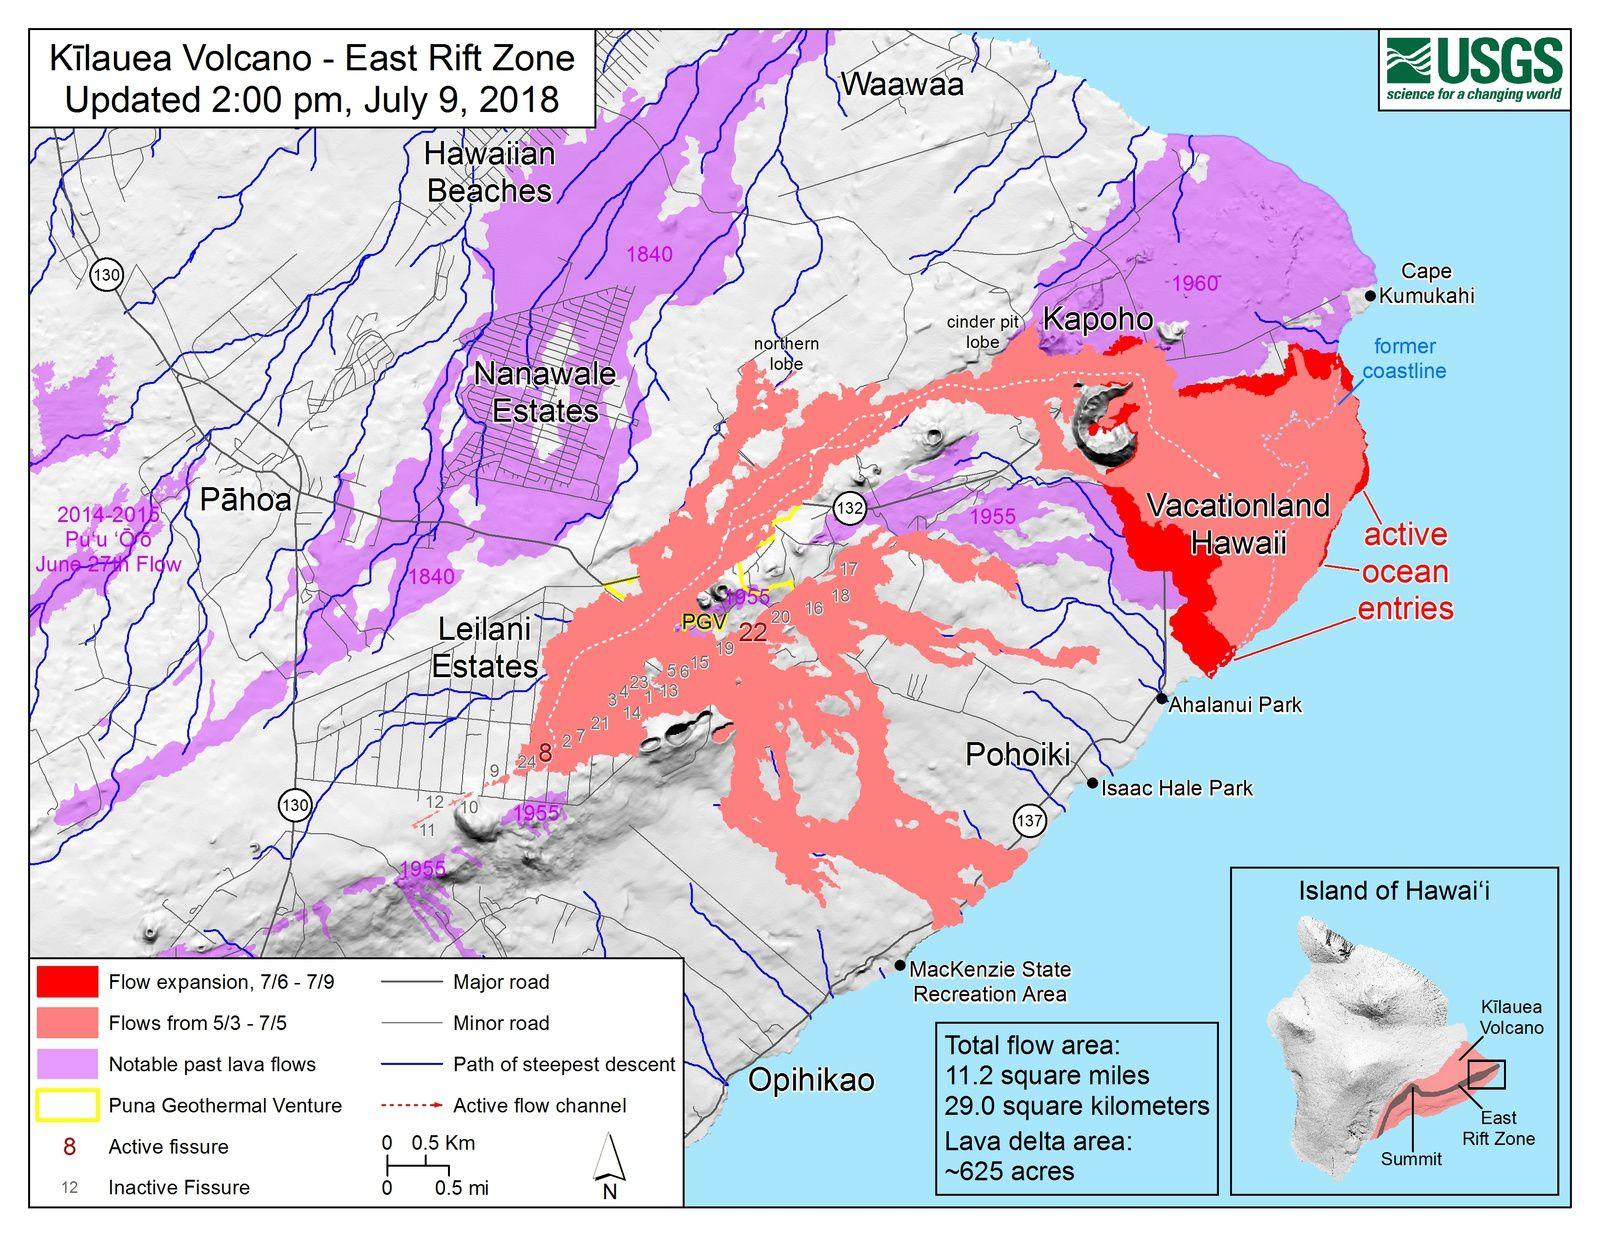 Kilauea East rift zone - thermal image and map of the flows and fissures on 09.07.2018 / 14h - Maps HVO-USGS